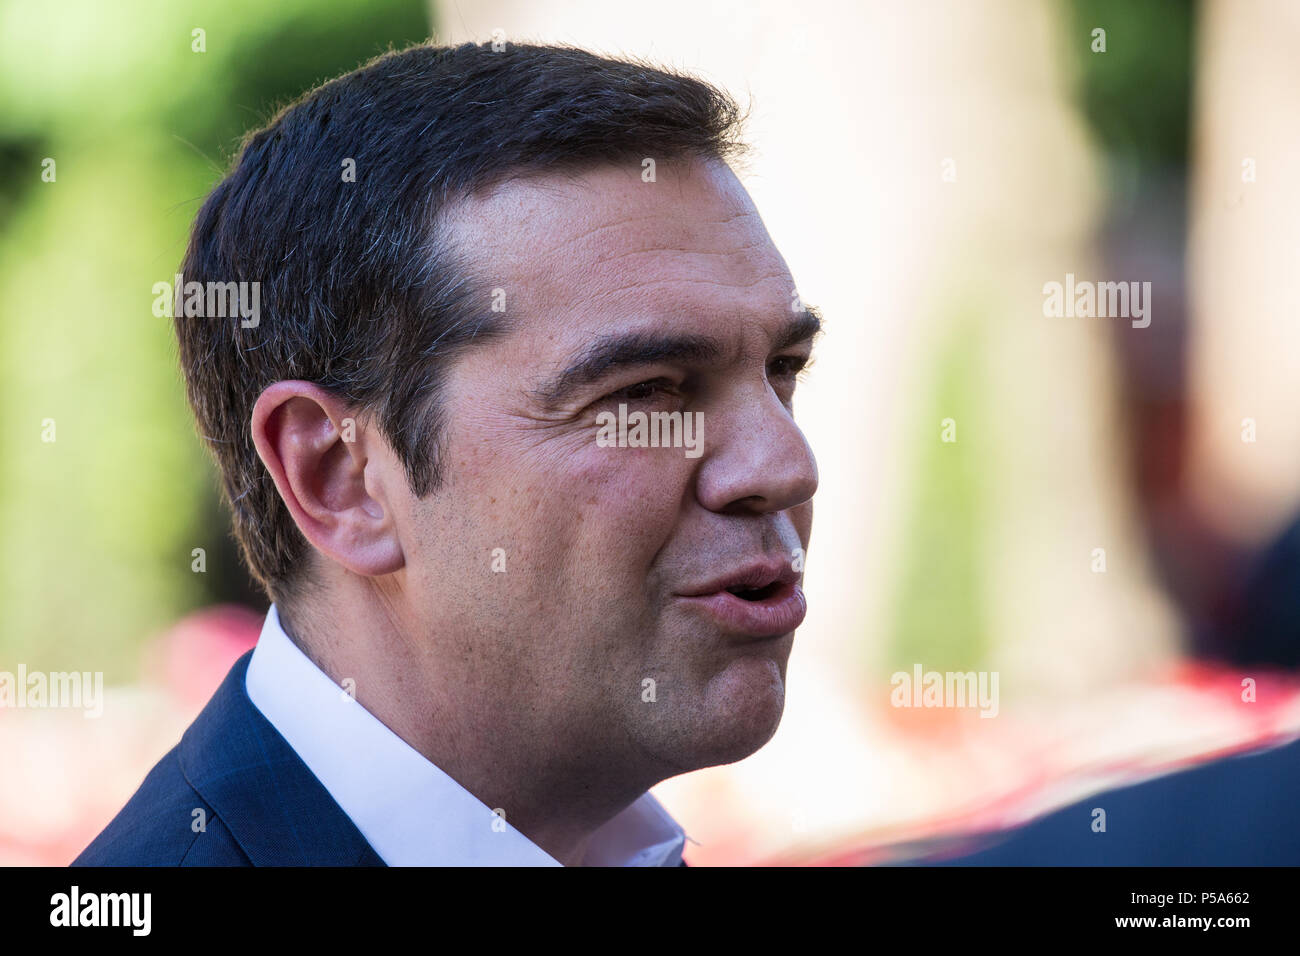 London, UK. 26th June 2018. Greek Prime Minister Alexis Tsipras talks to Greek television after meeting Prime Minister Theresa May at 10 Downing Street. Credit: Mark Kerrison/Alamy Live News - Stock Image